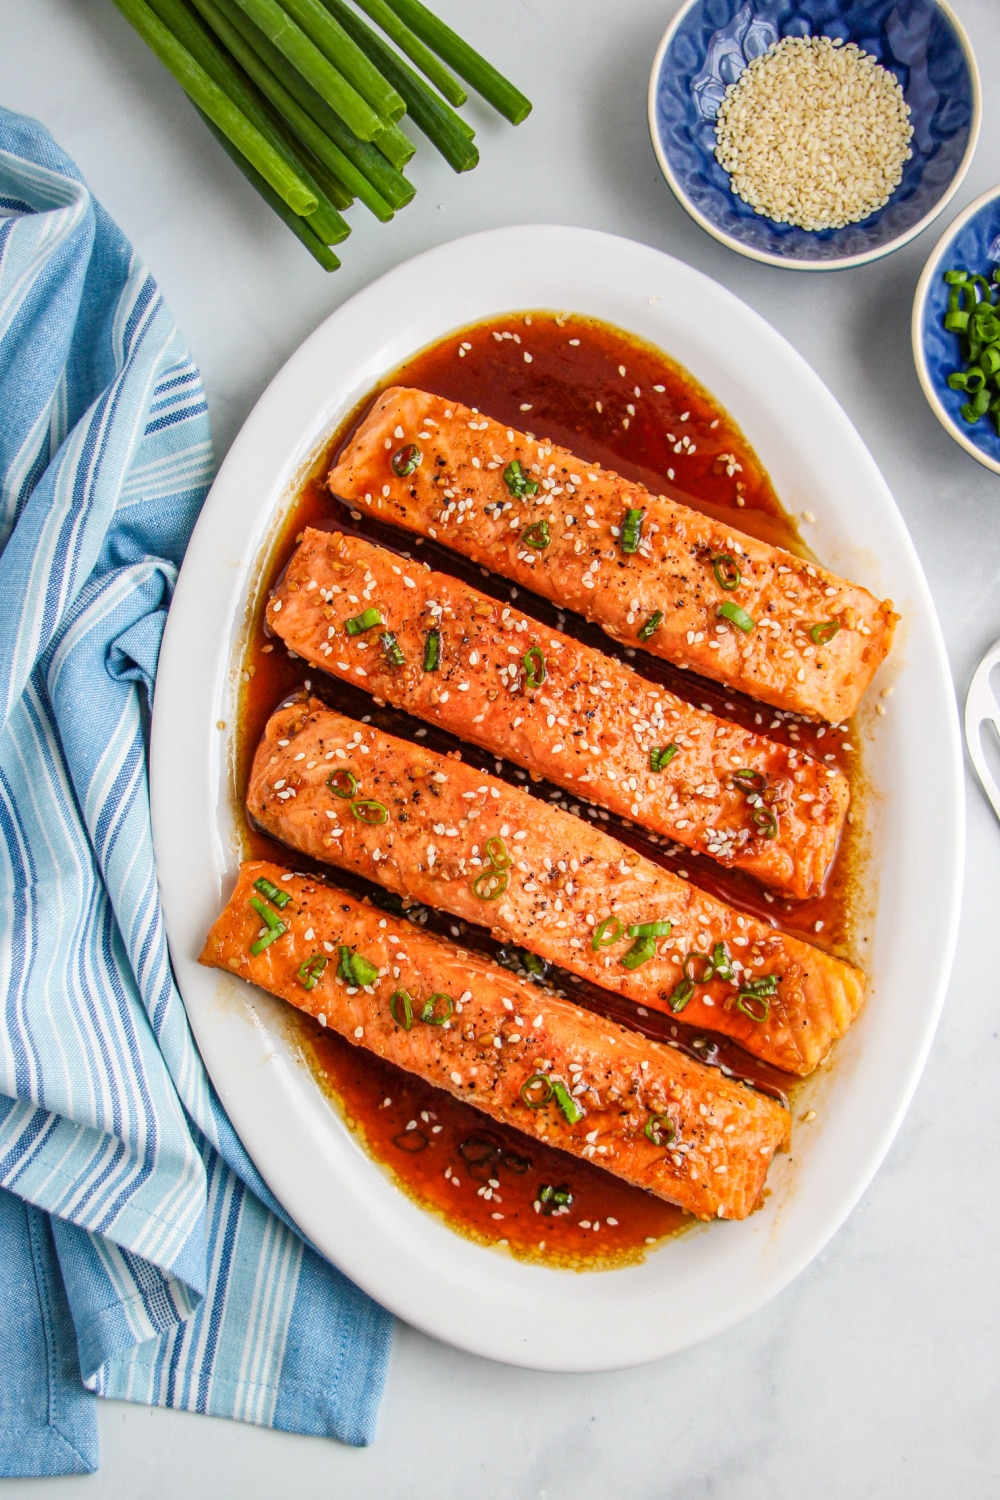 Honey Garlic Salmon fillets on a white platter with a blue dish towel on the left.